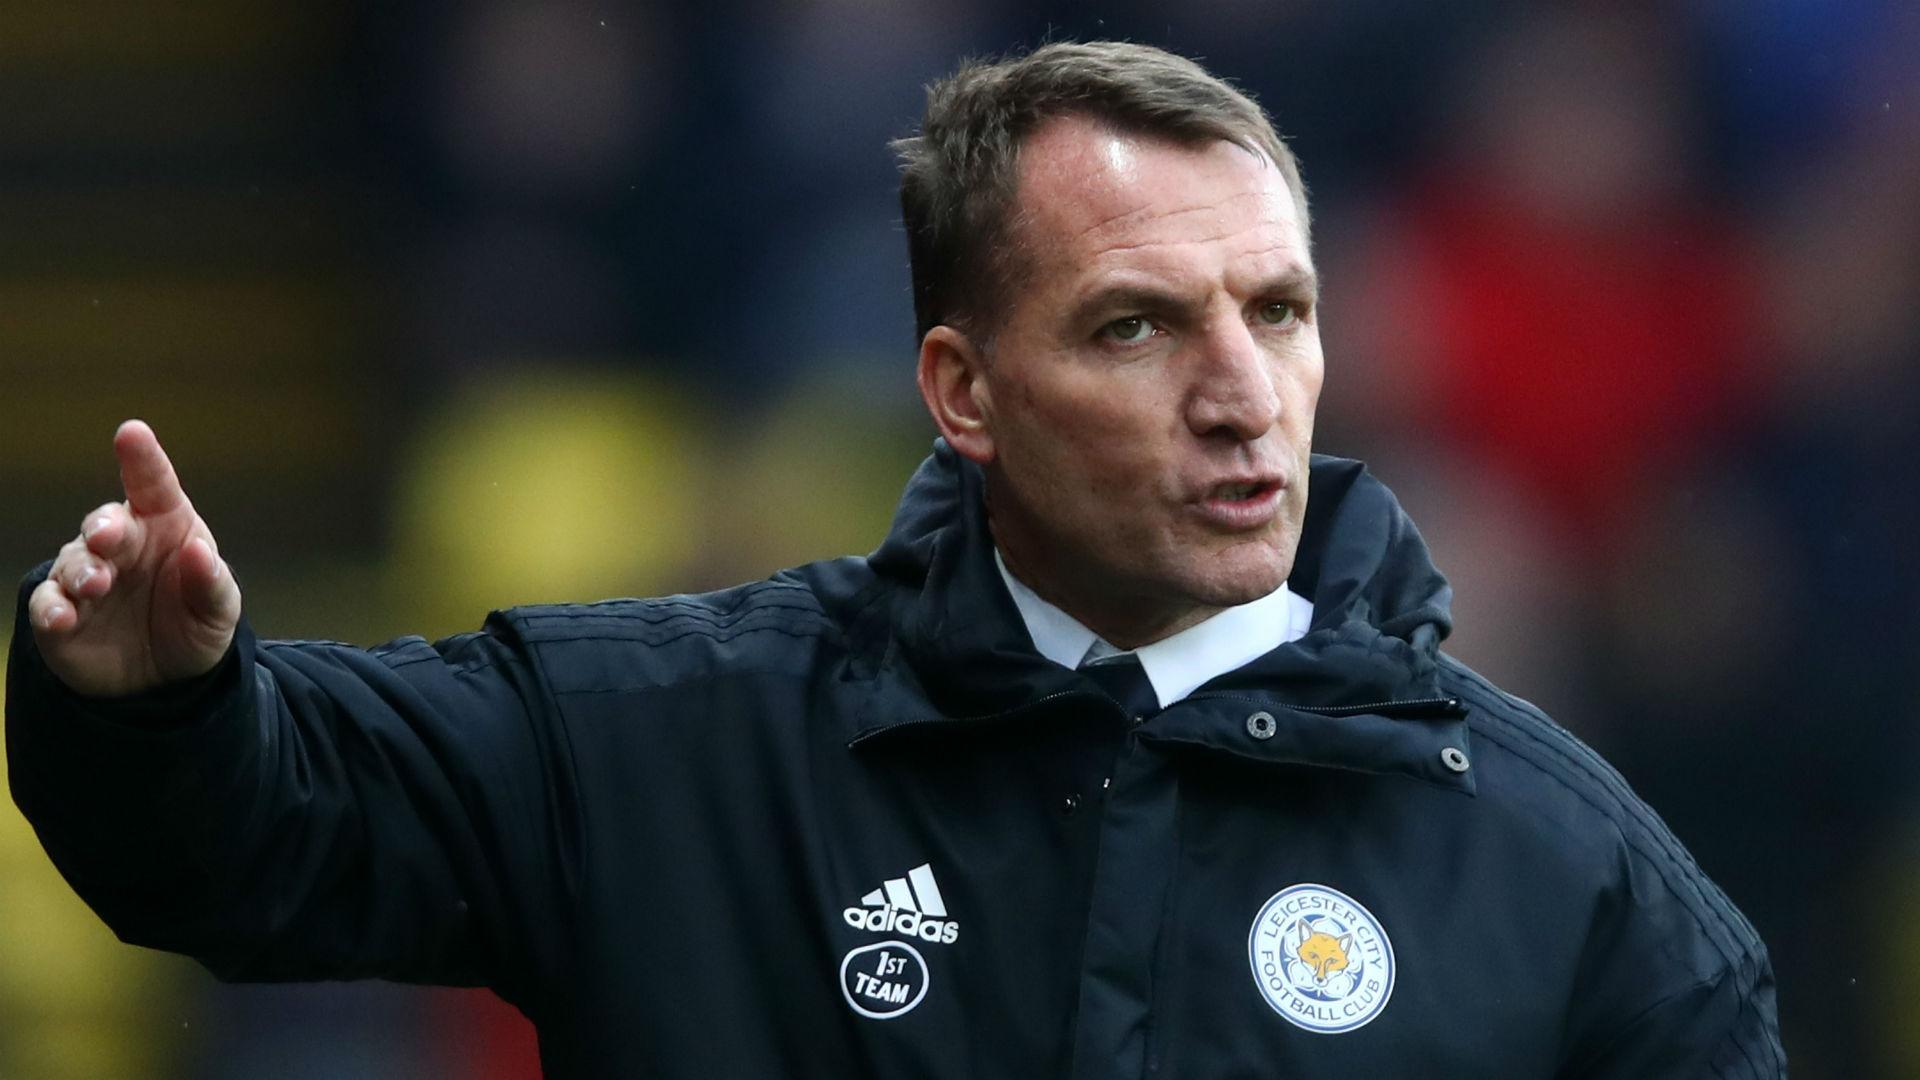 New Leicester boss Rodgers' Scotland house burgled in wake ...